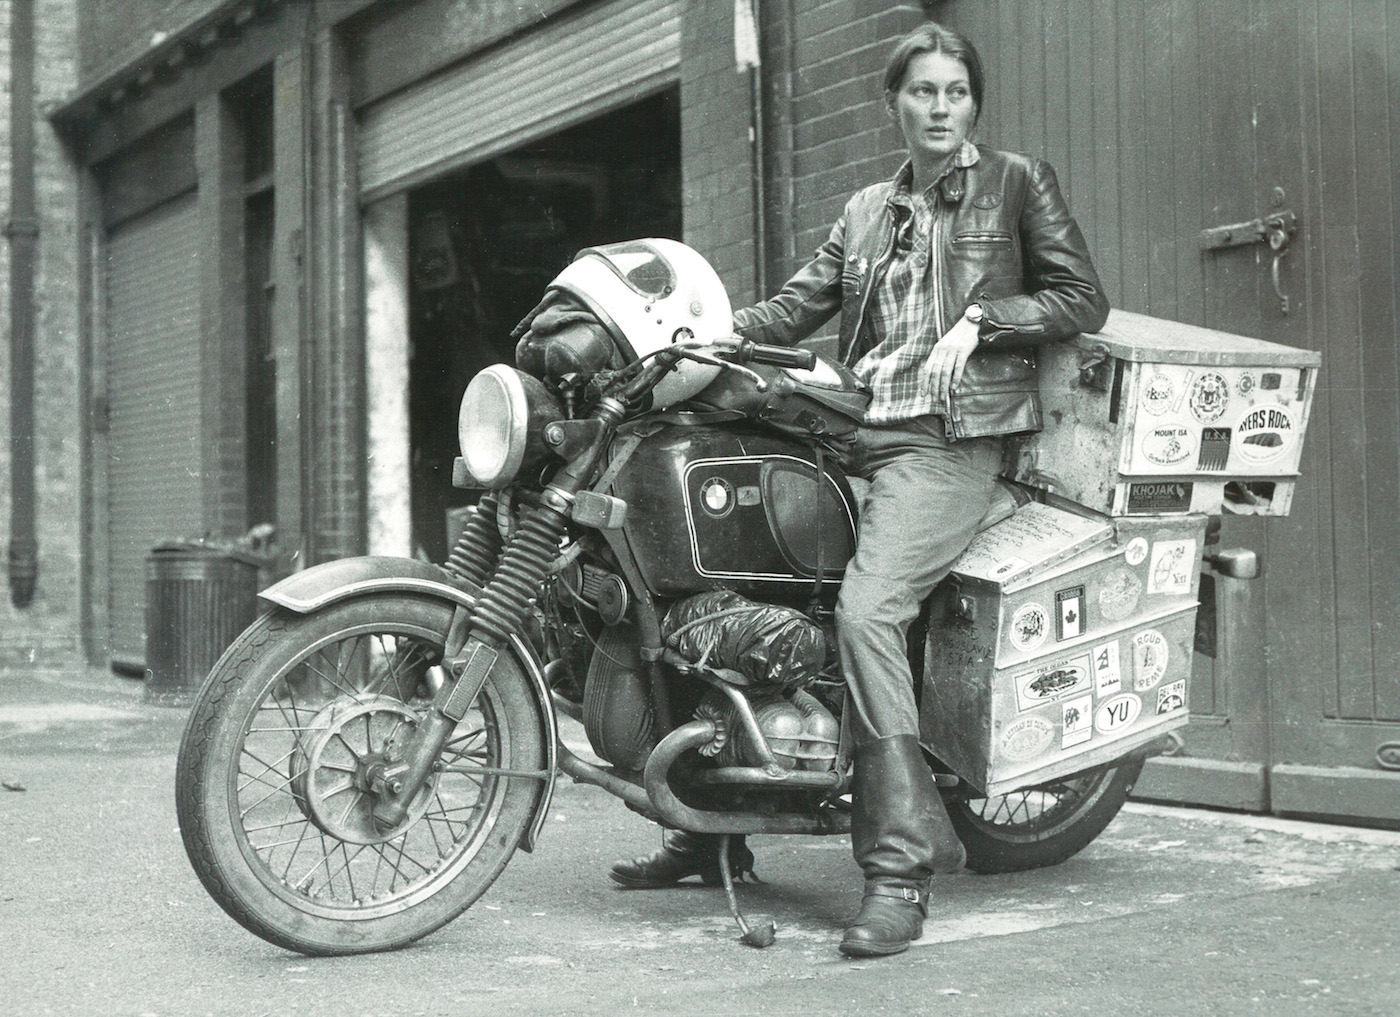 Elspeth Beard Lone Rider 3 1 - Elspeth Beard: Lone Rider - The First British Woman To Motorcycle Around The World